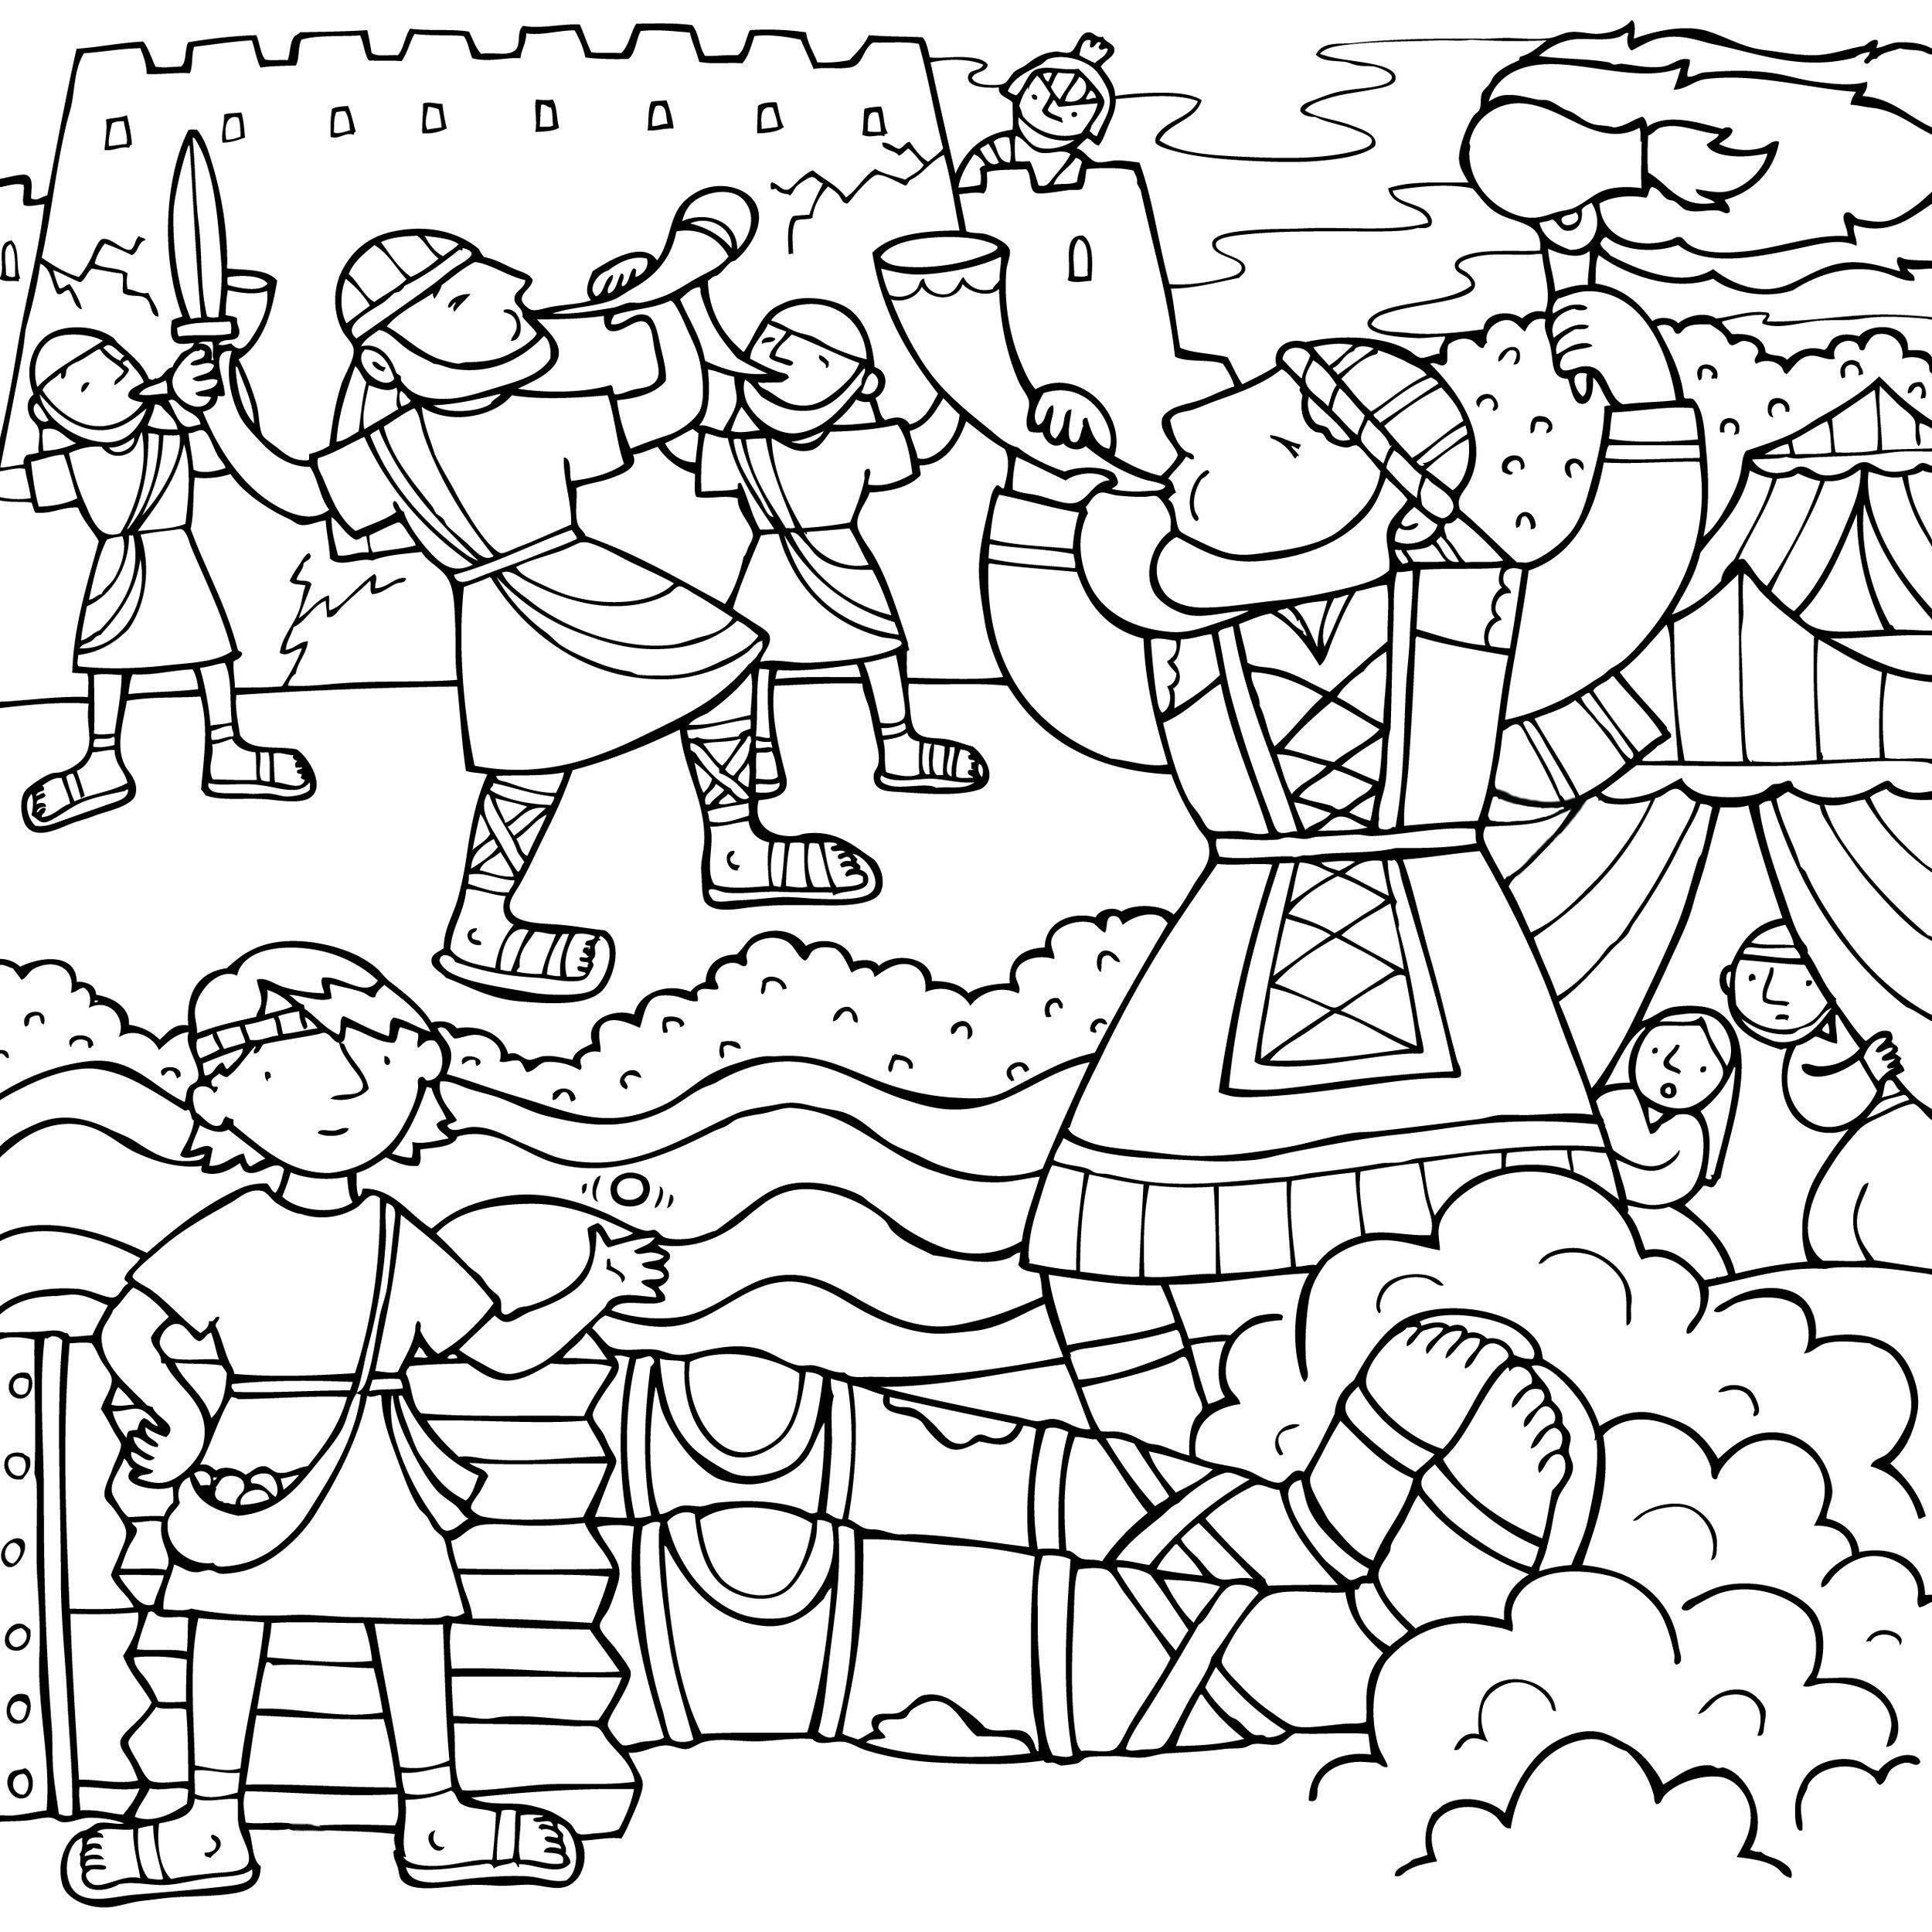 Old Testament Heroes Coloring Pages